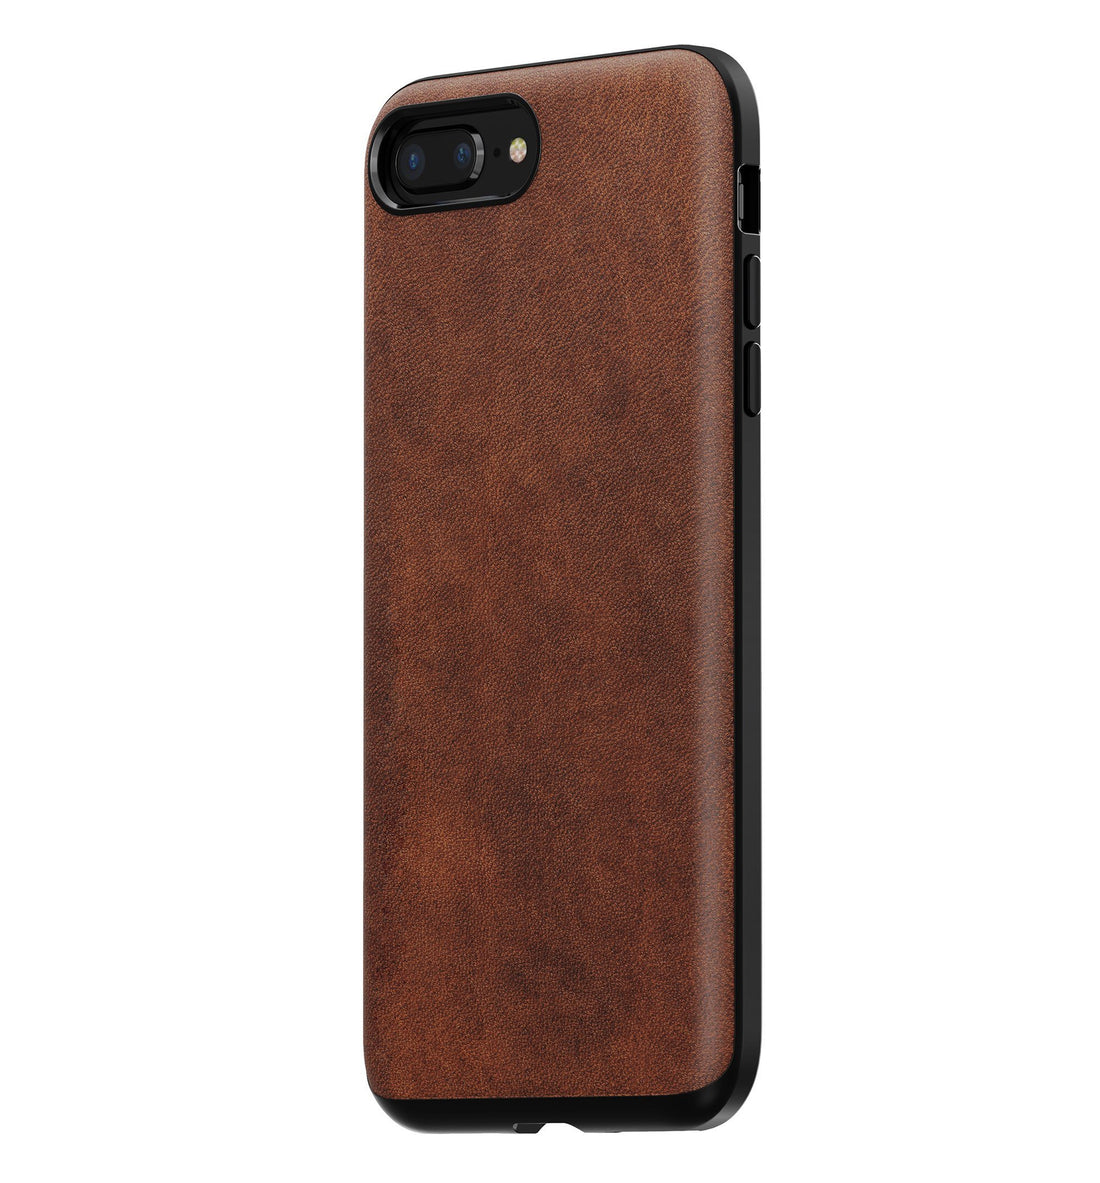 brand new 0bba2 0c300 Nomad Rugged Leather Case - Rustic Brown - iPhone 8/7 Plus – Iron ...